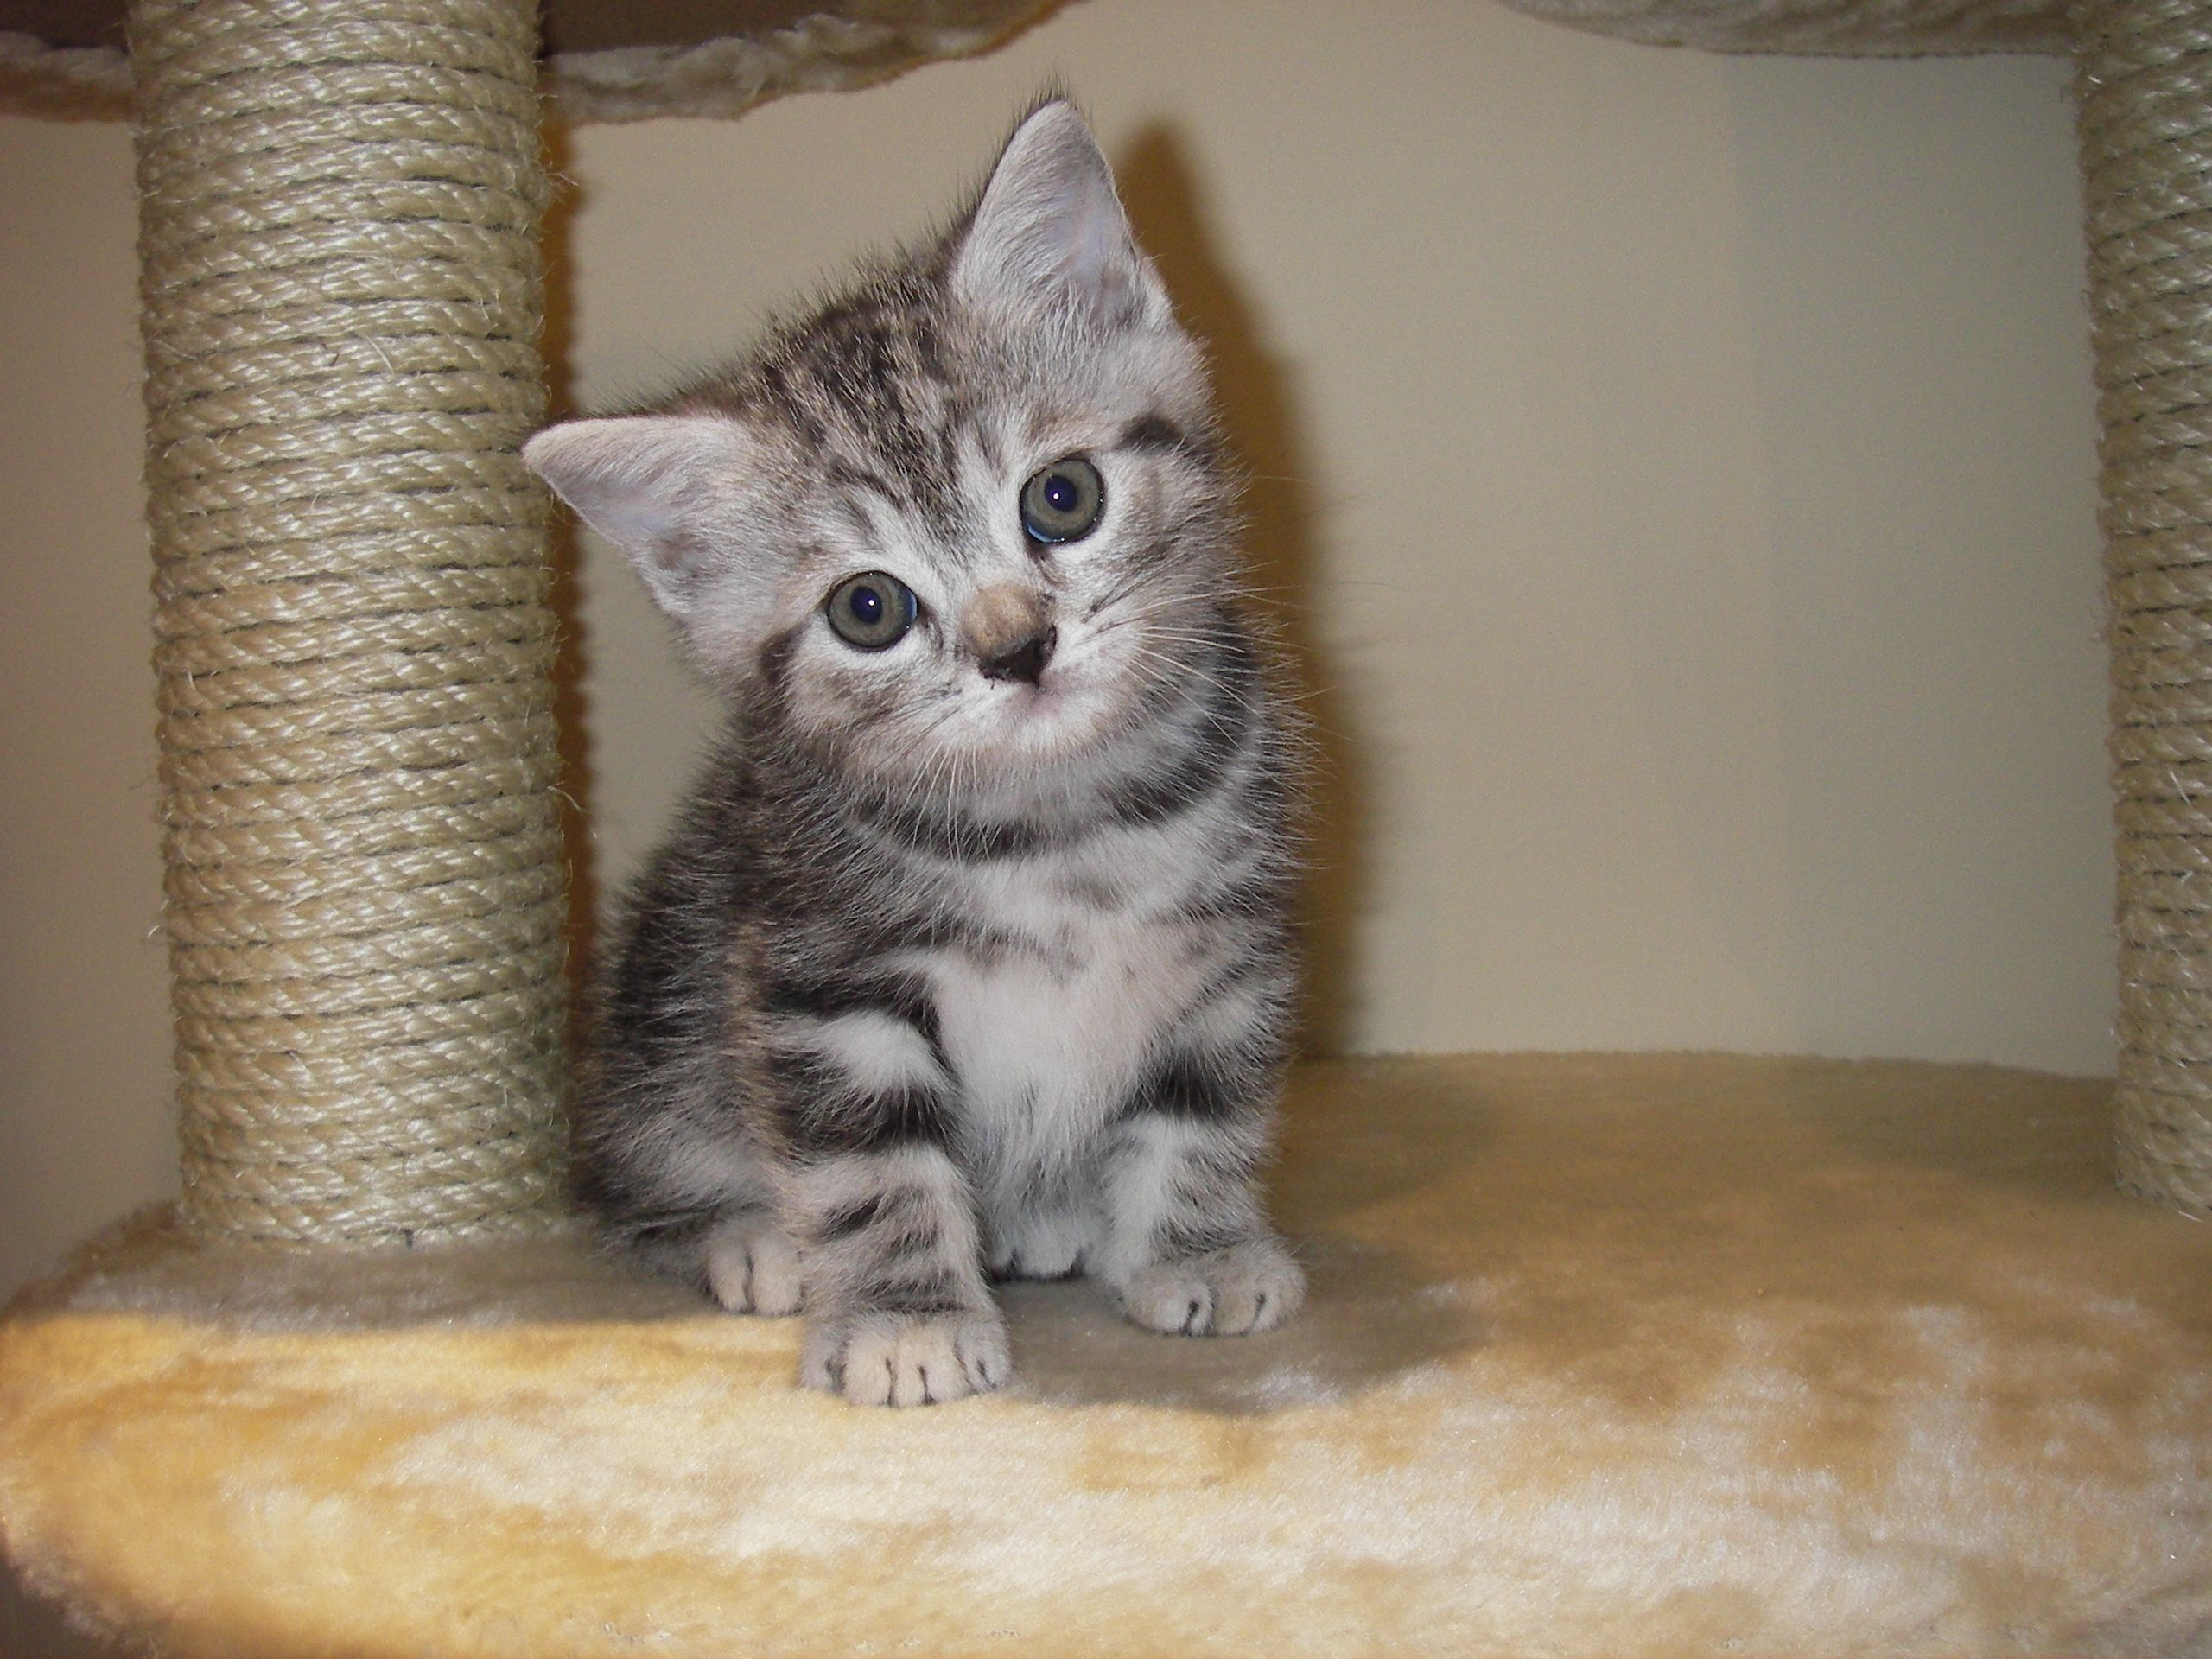 Sweet Face Kittens Cutest Silver Tabby Cat Kittens